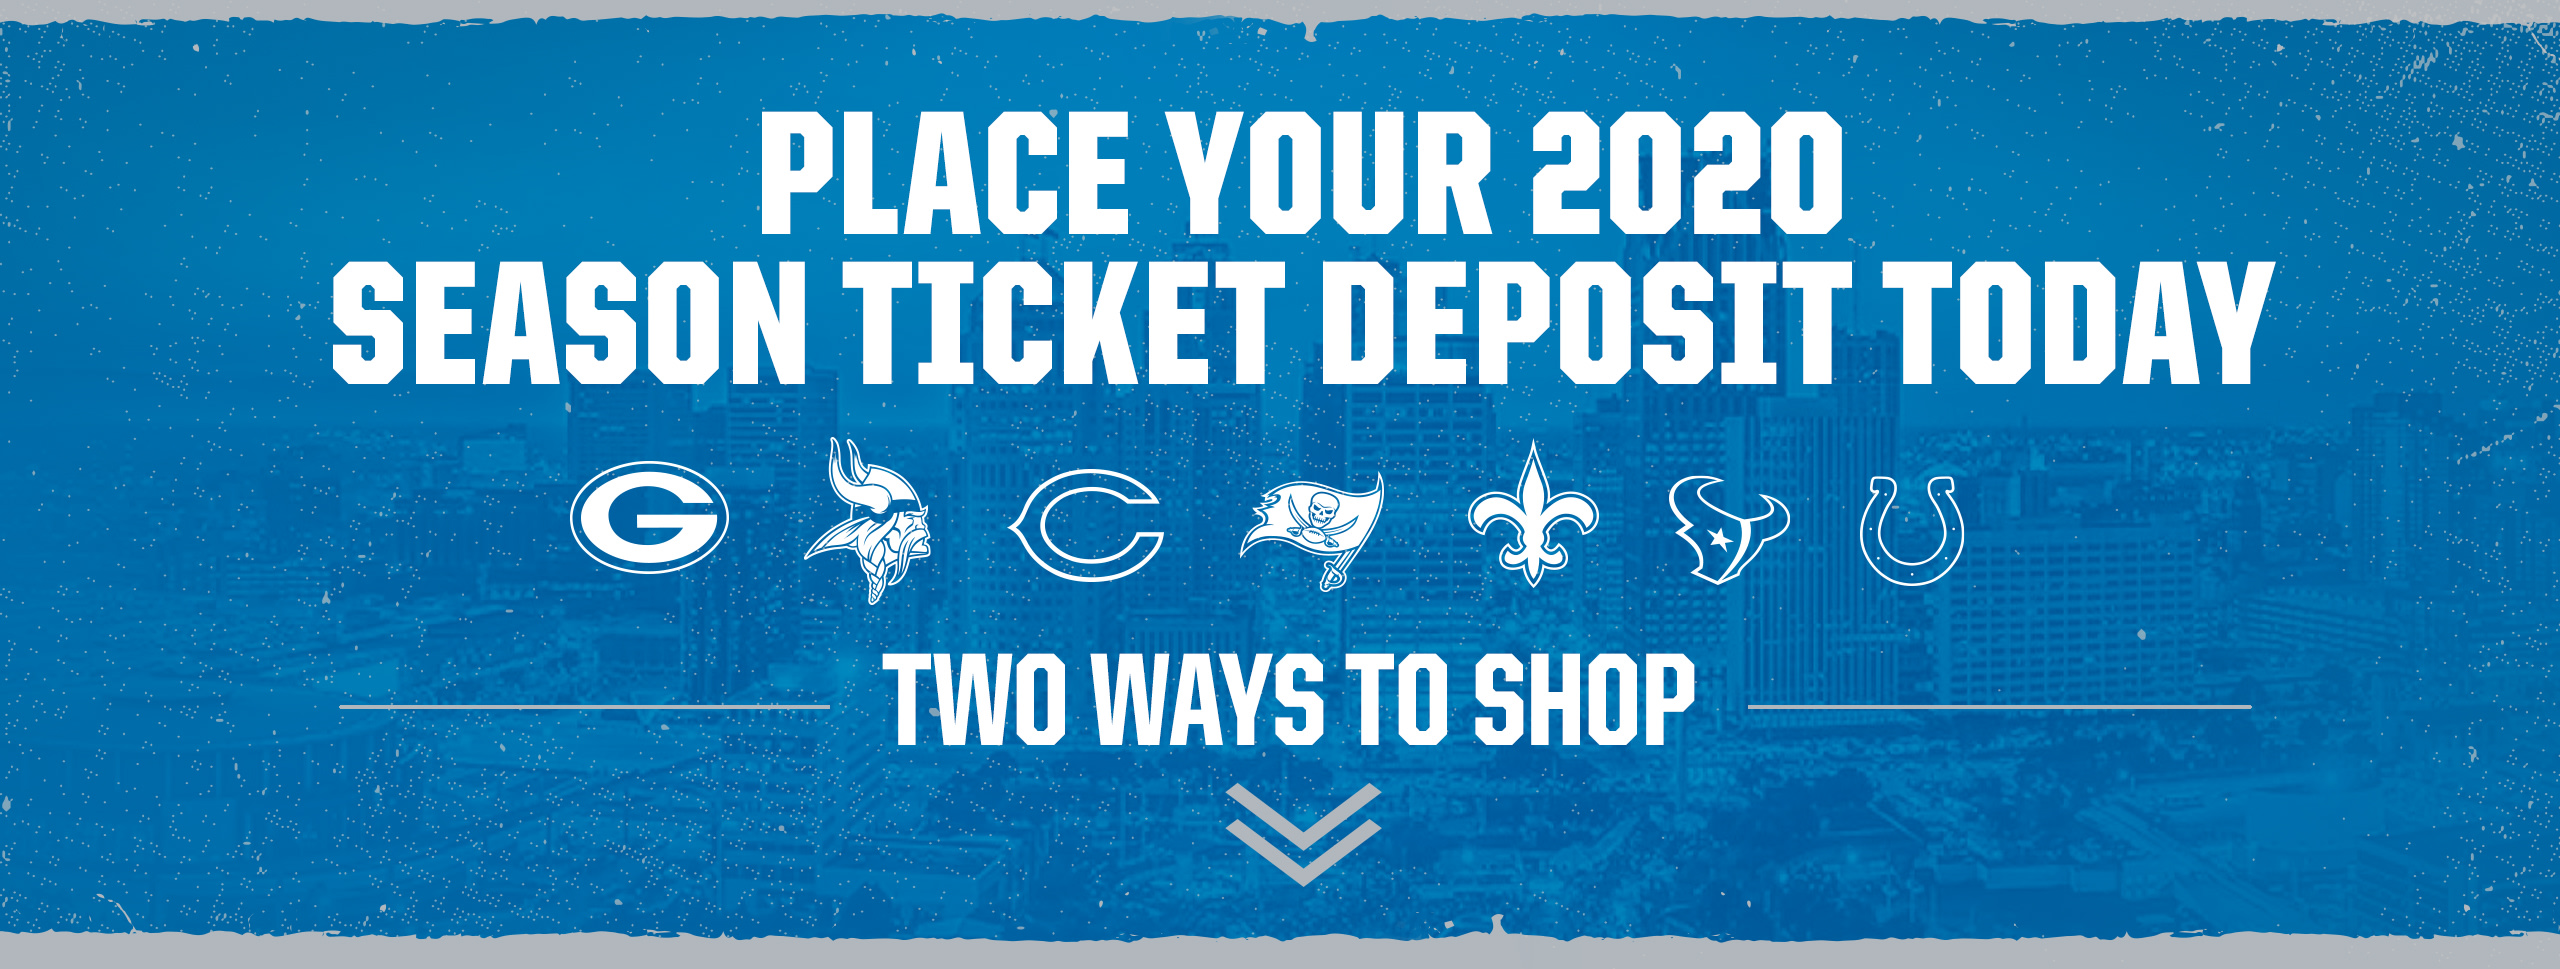 Detroit Lions Schedule 2020.The Official Site Of The Detroit Lions